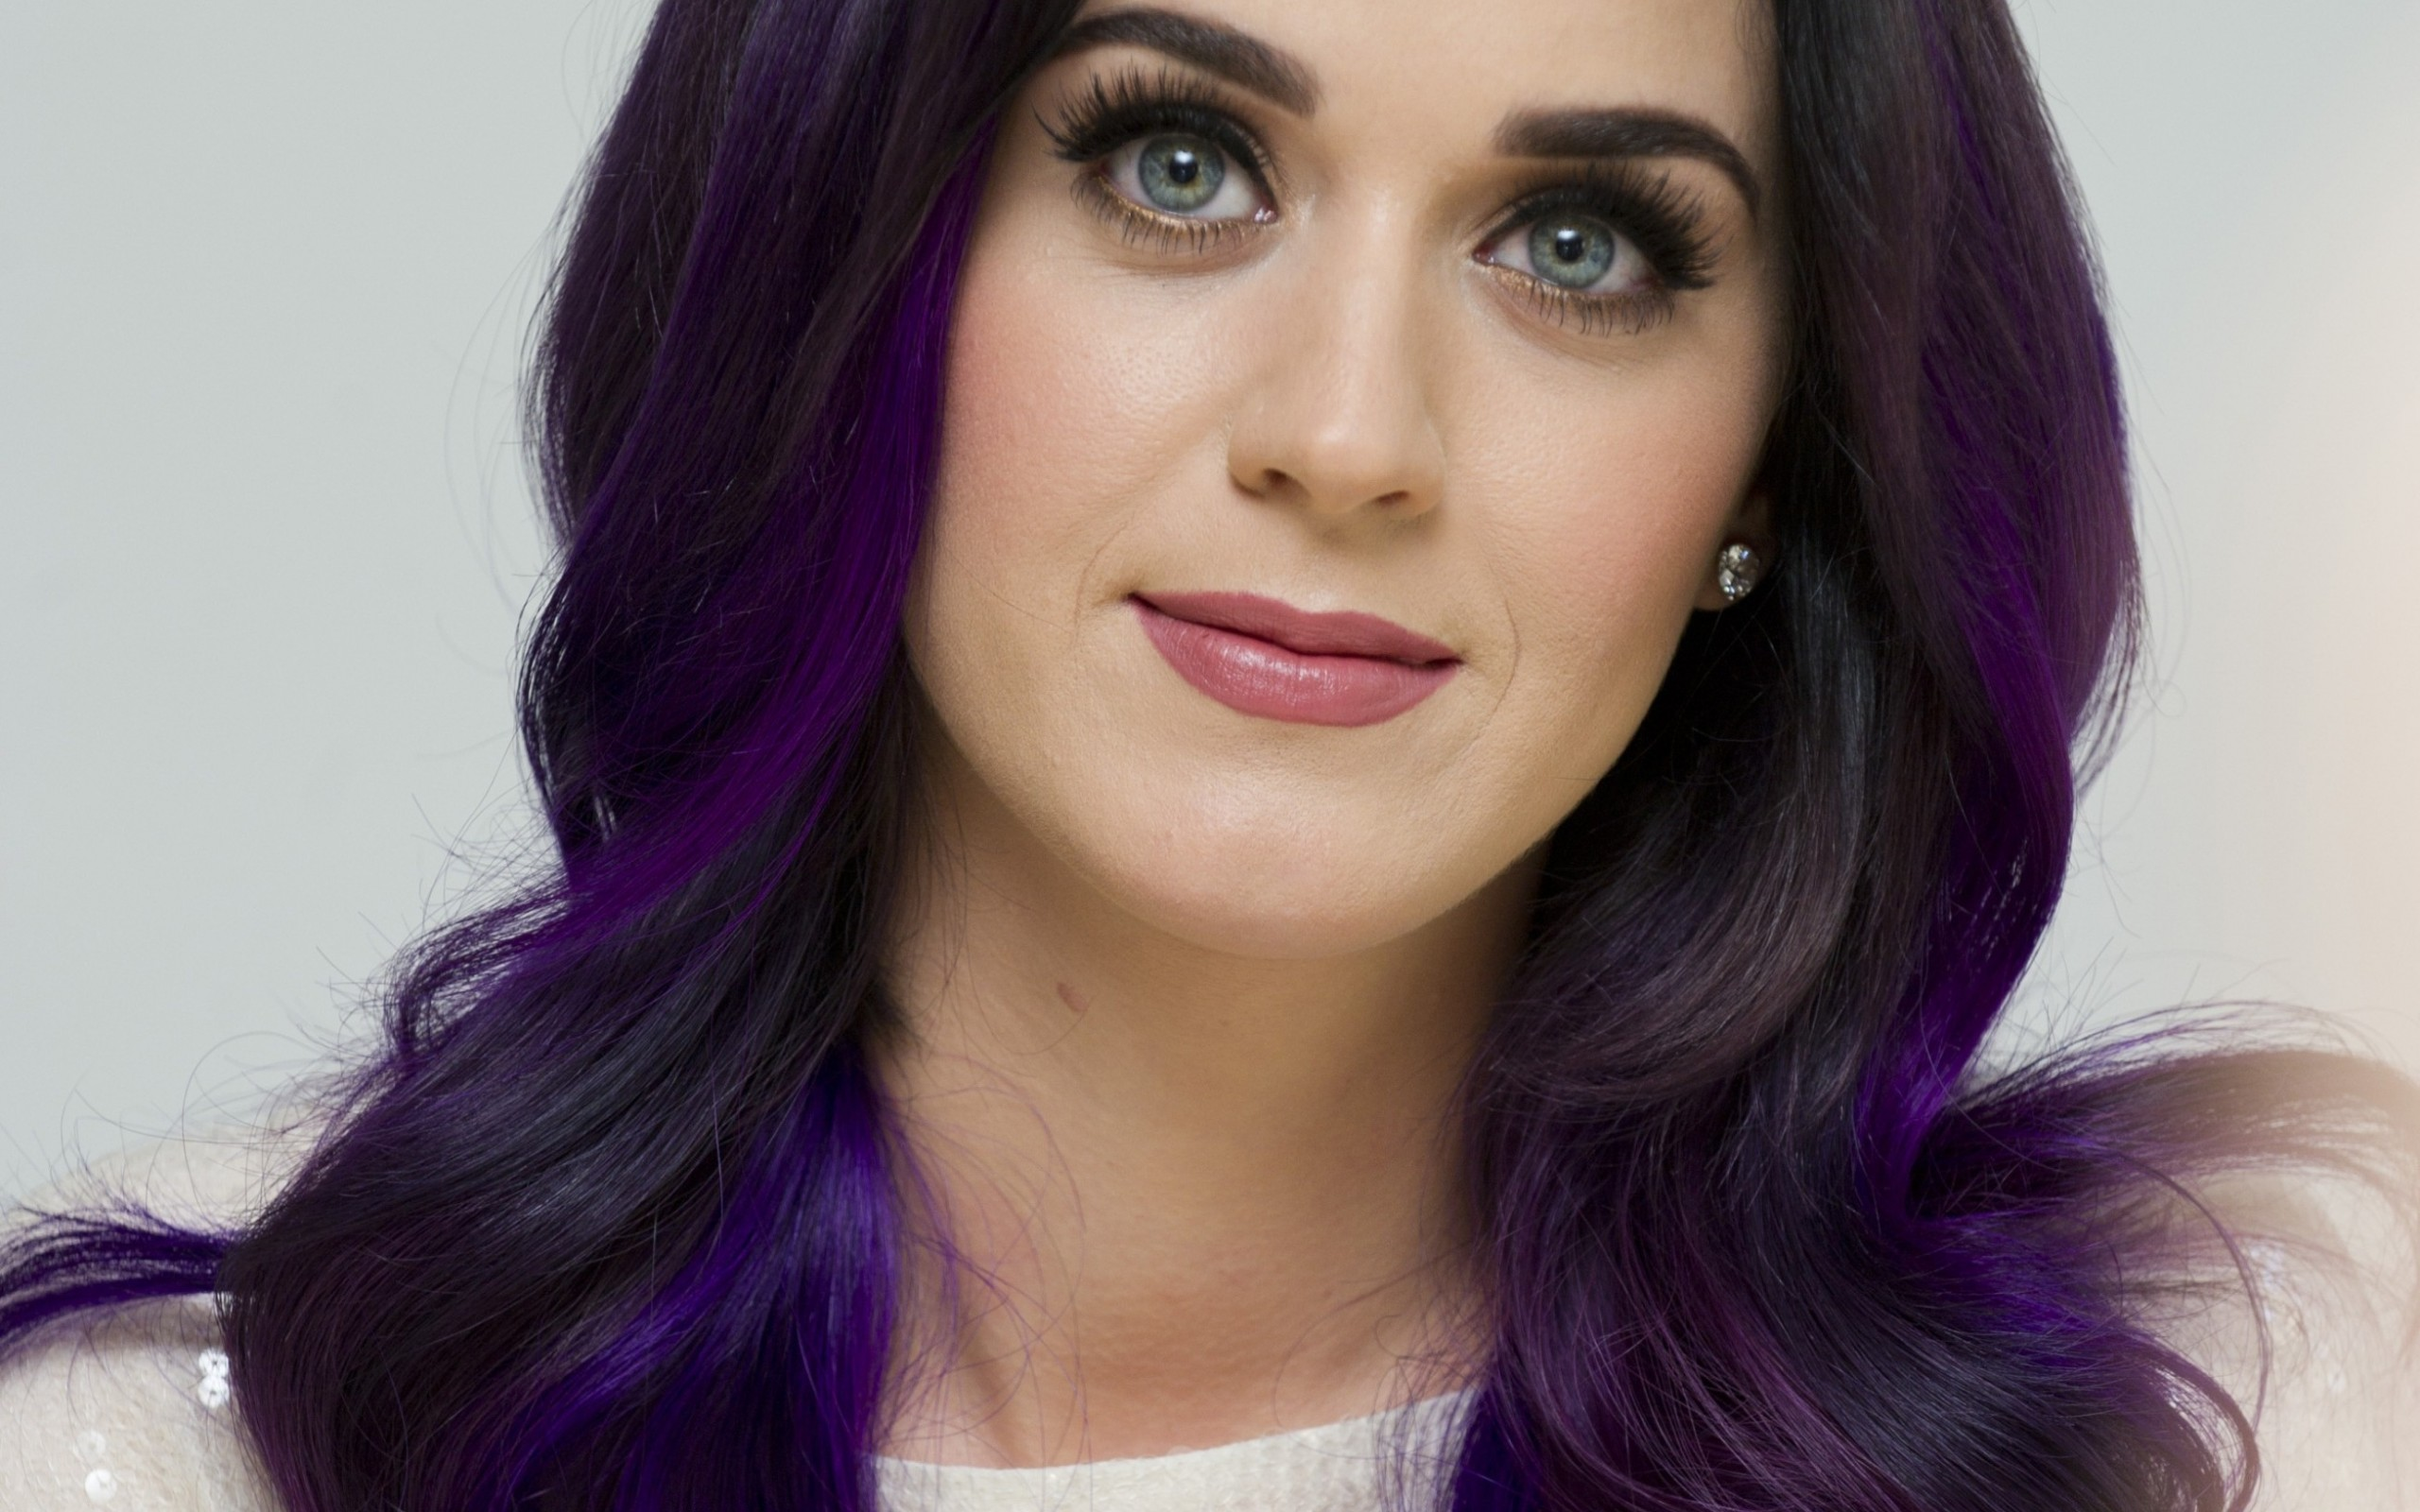 Katy Perry Wallpapers, Pictures, Images кэти перри